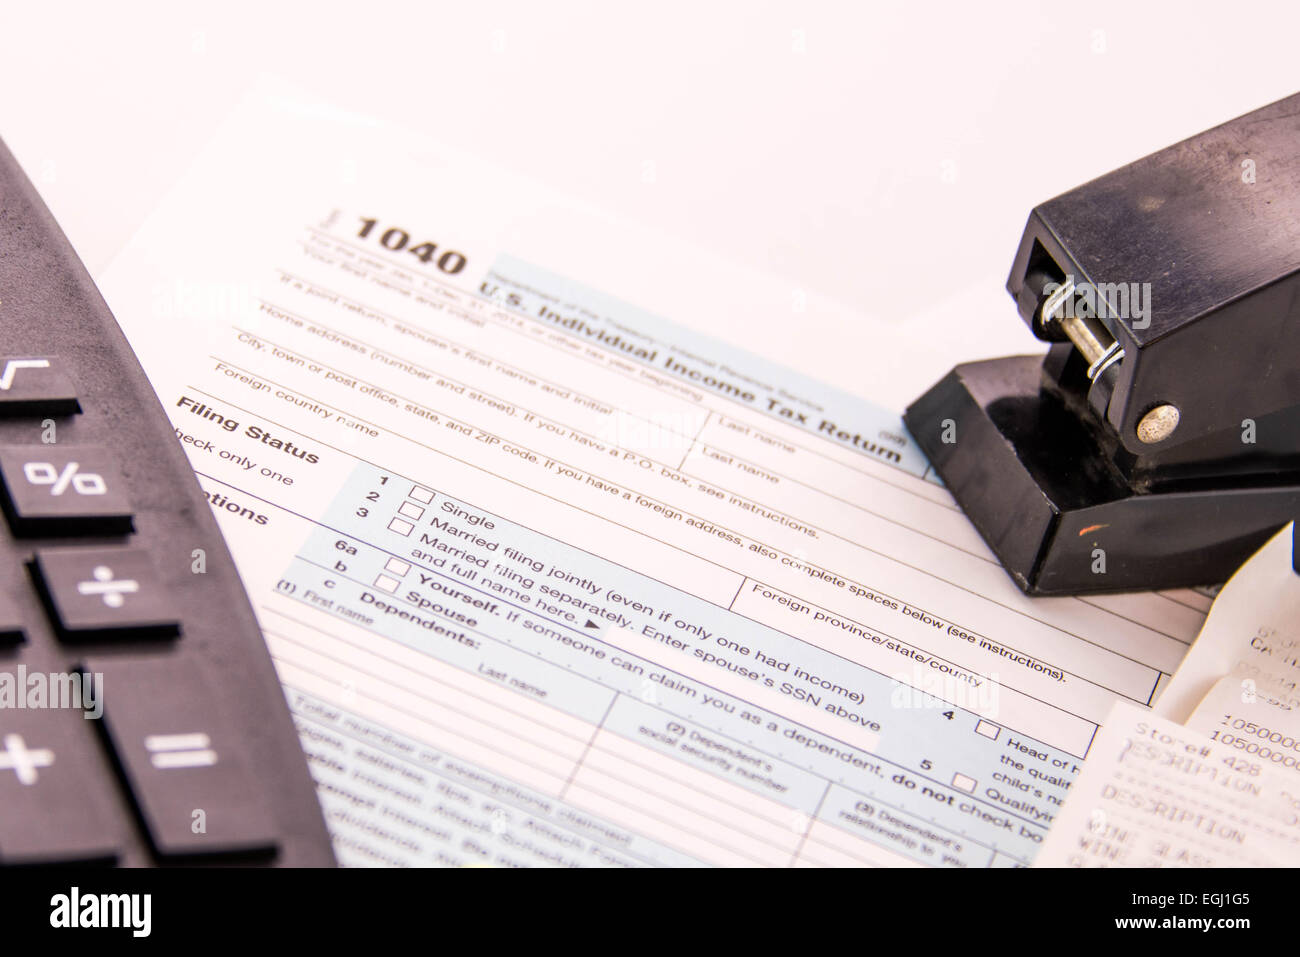 tax preparation supplies and blank tax forms stock photo 79072341